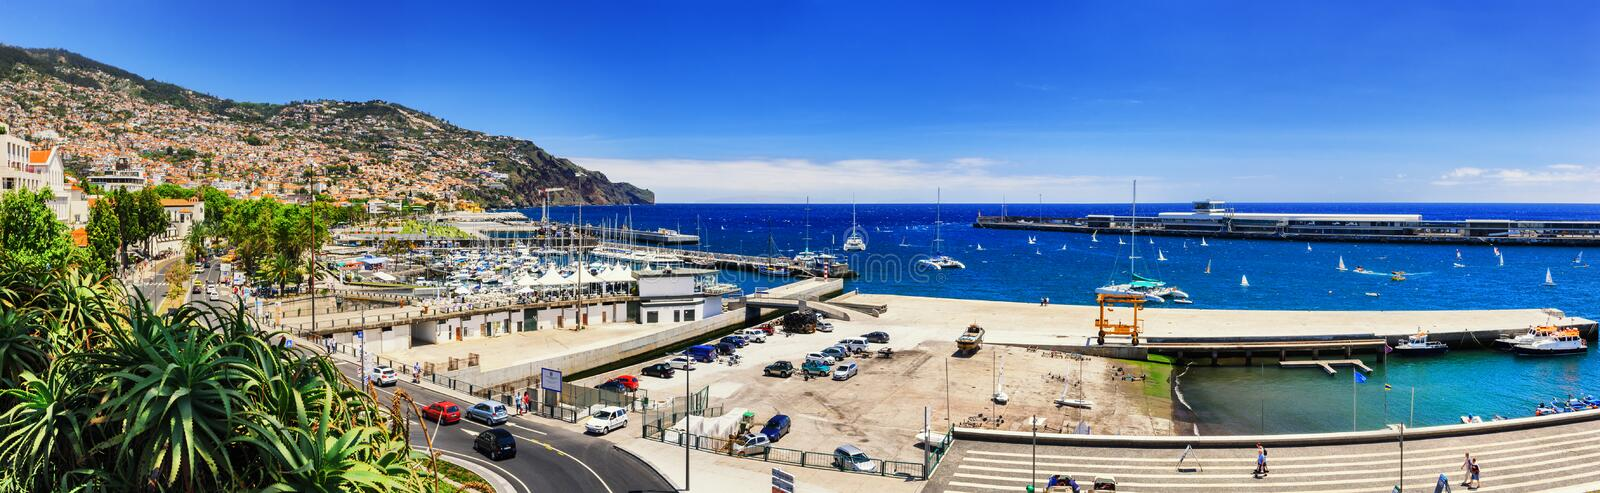 Panoramic landscape with Funchal port. Madeira island. Panoramic landscape with Funchal port and coastline. Madeira island royalty free stock image